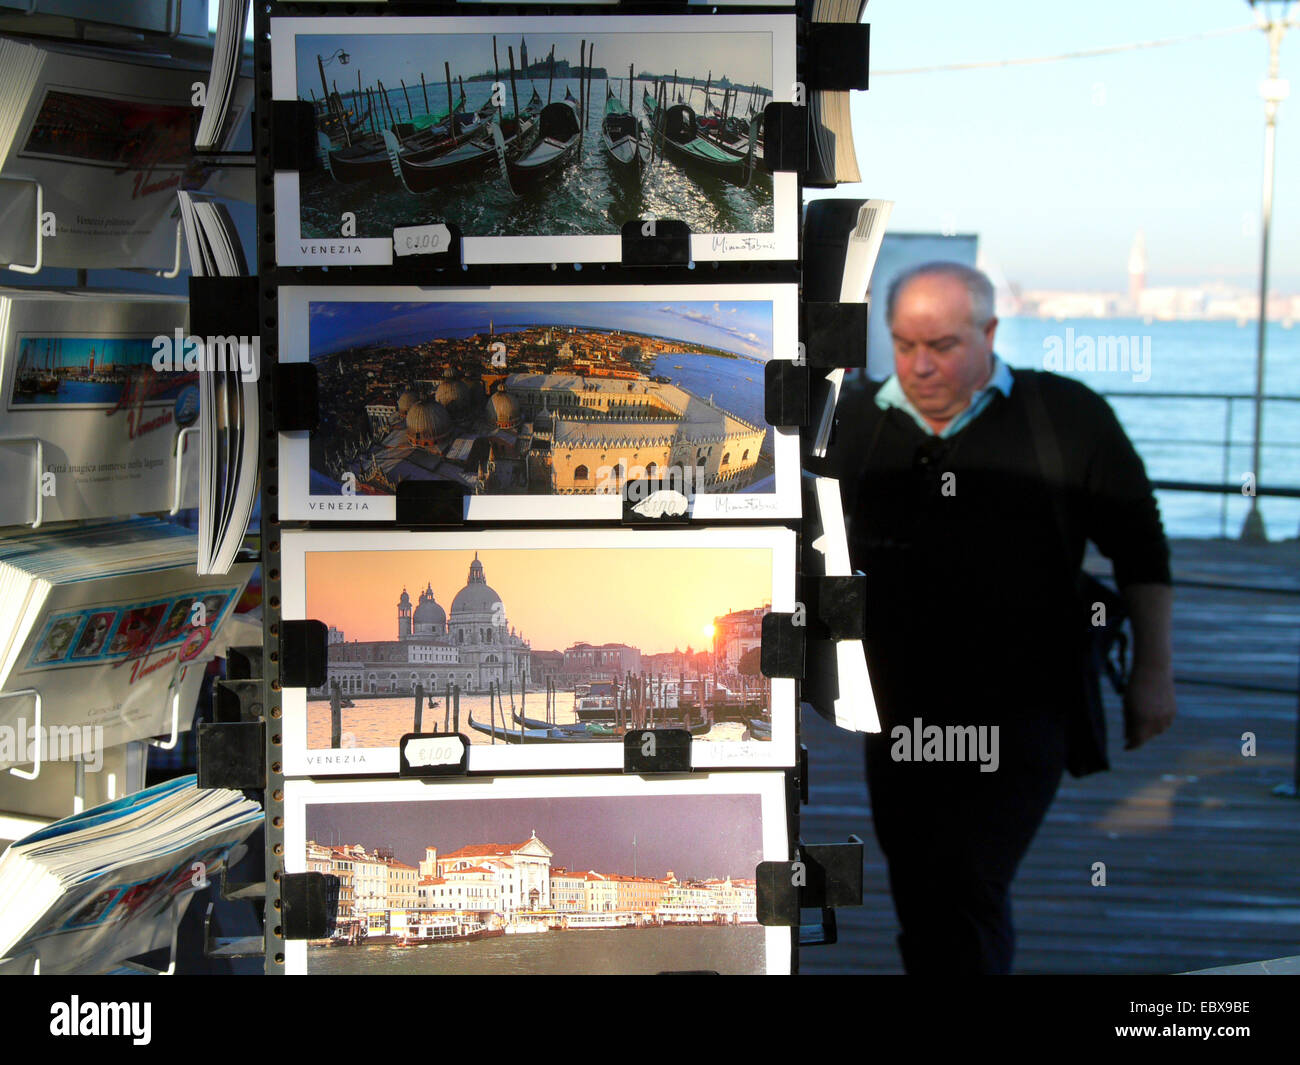 Lido di Venezia, souvenir booth with postcards, Italy, Venice - Stock Image